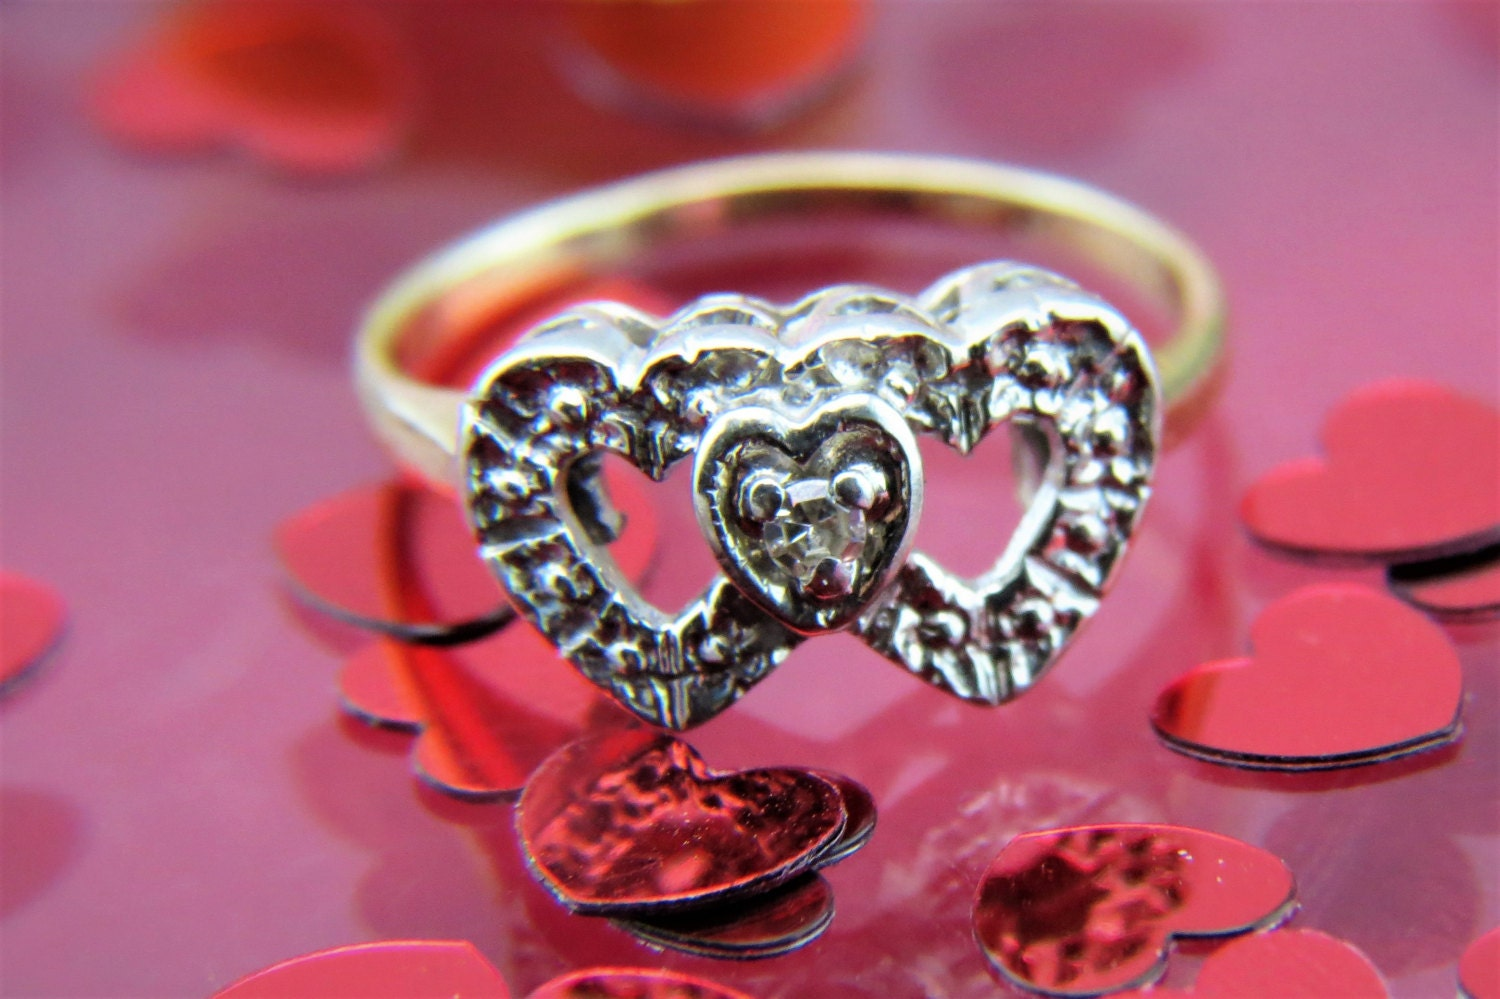 Vintage 14kt Yellow Gold 3 Hearts Ring with a Diamond 2 grams Size 5